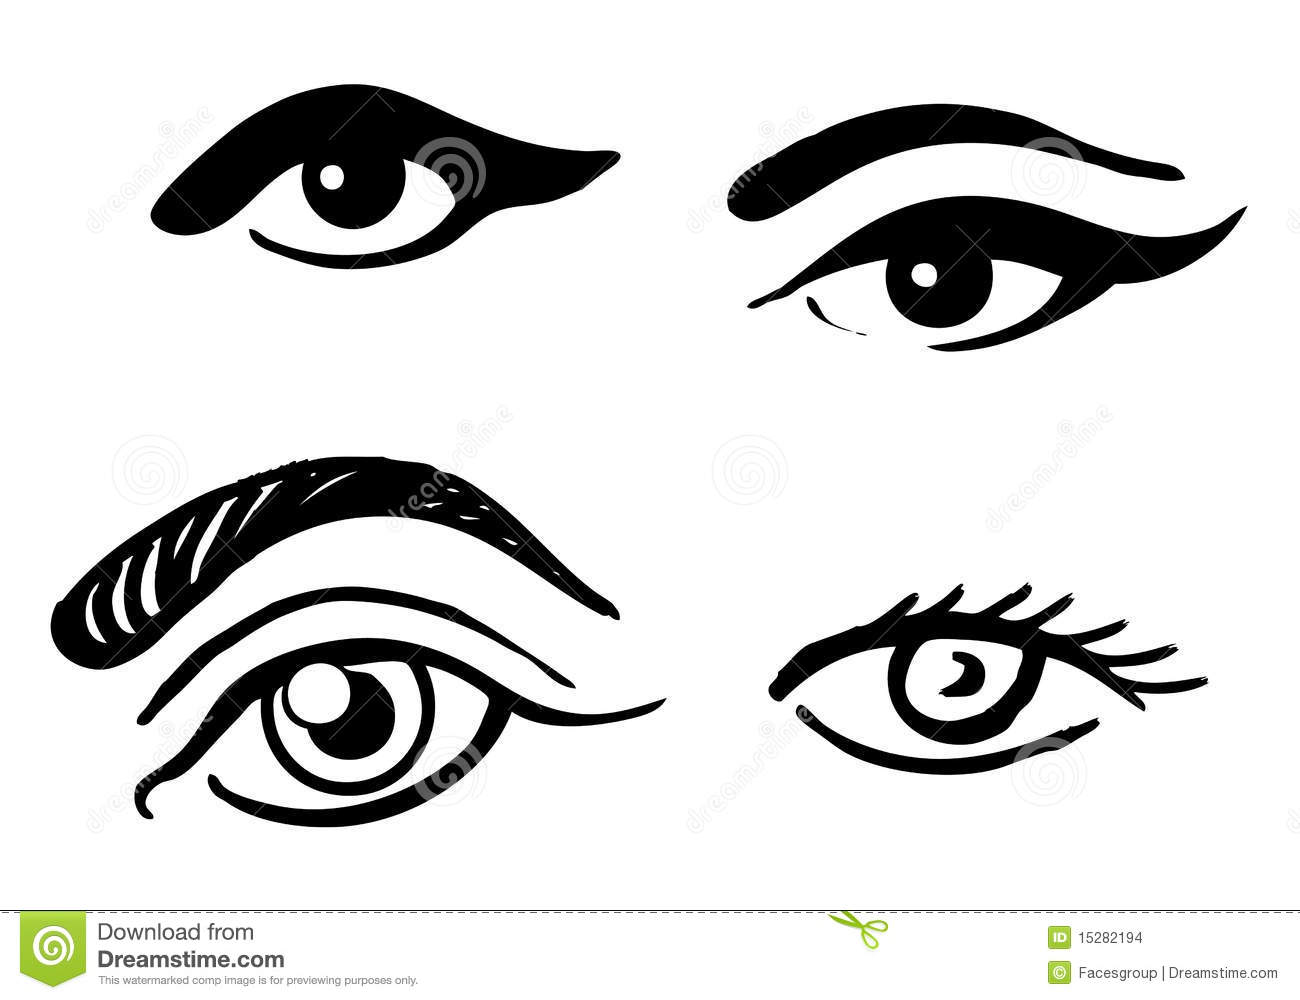 Cats And Dogs Tattoo Stencils further How To Draw Sayaka From Danganronpa also Stock Illustration Melting Eye Hand Drawn Vector Illustration Drawing Human Melt Effect Image52681443 together with Set Of Cartoon Funny Eyes For  ics Design Vector 2178759 moreover Stock Vector Silhouette Of Eyes And Eyebrow Open And Closed Black White Vector Illustration. on eyeball drawing